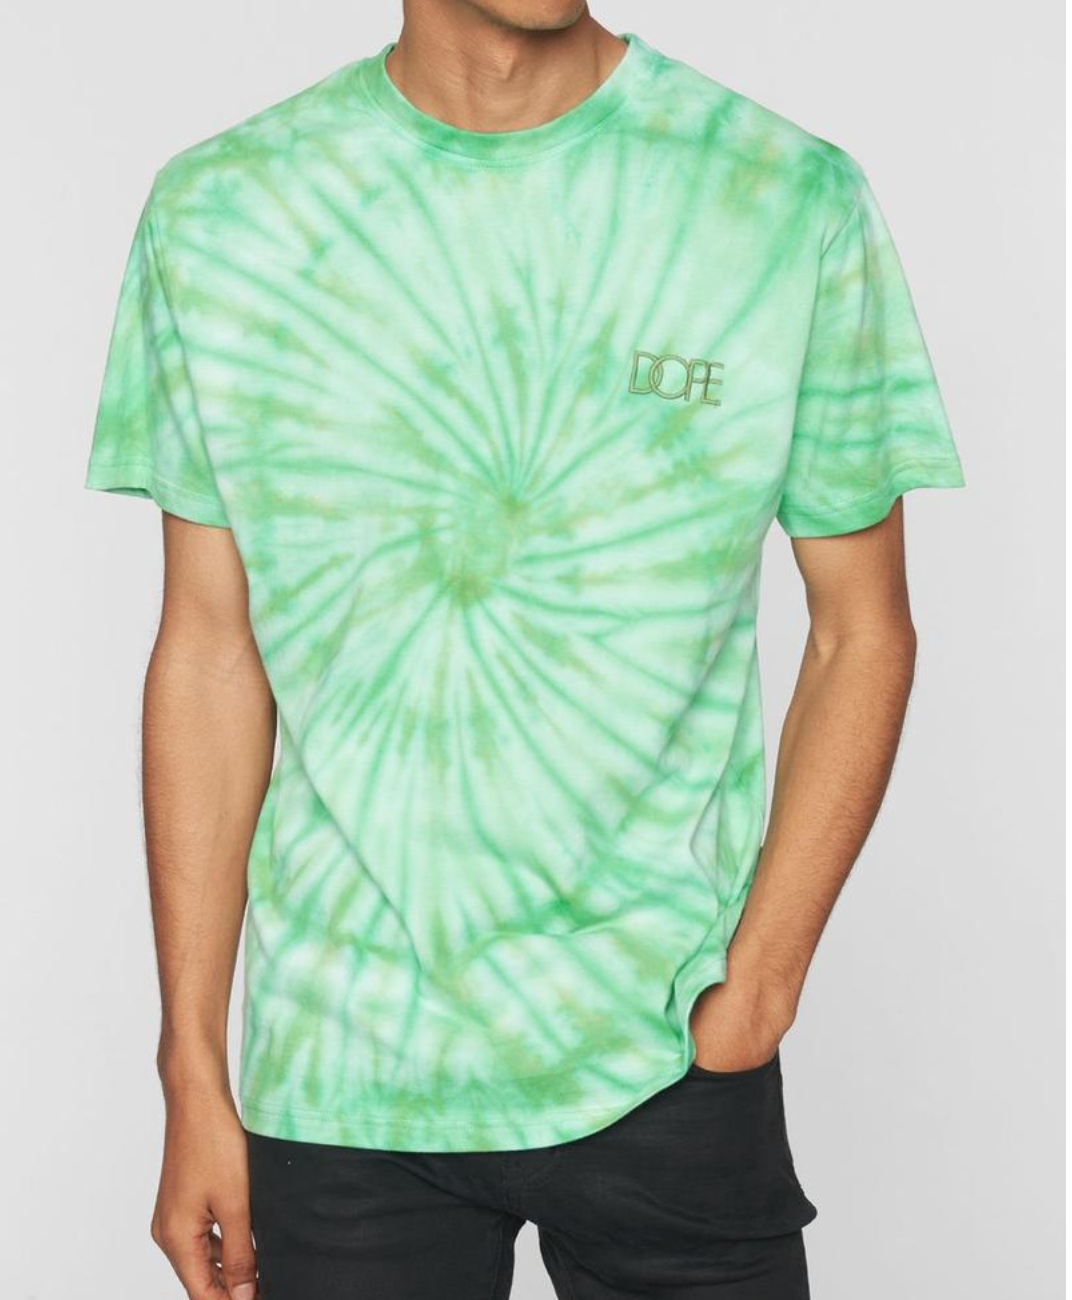 Savers Tie Dye Tee (Green) /D8